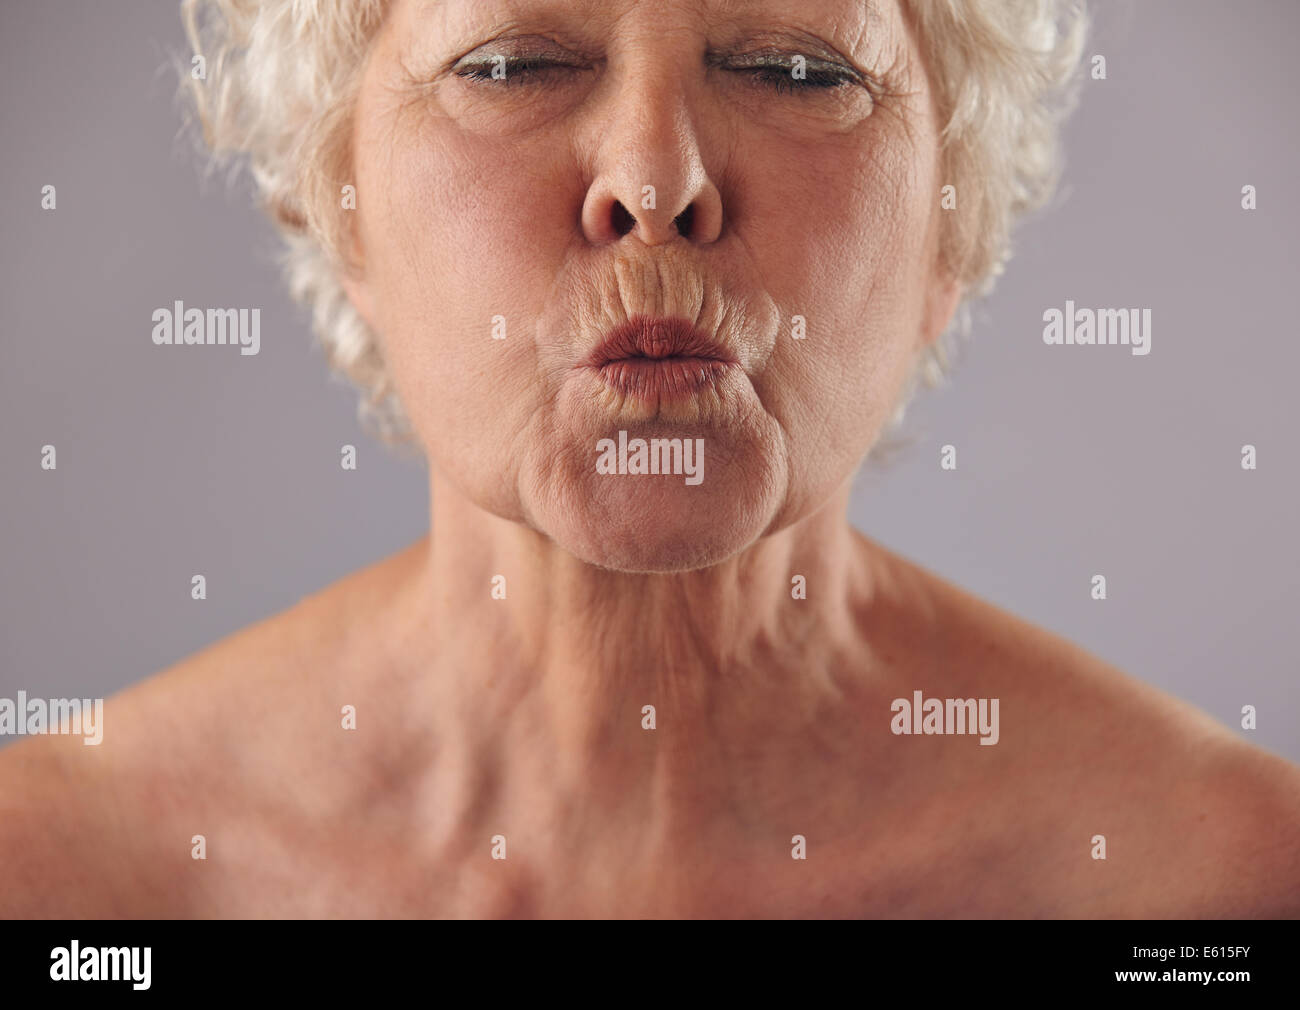 Cropped portrait of senior woman puckering lips. Femelle adulte grimaçant contre l'arrière-plan gris Photo Stock